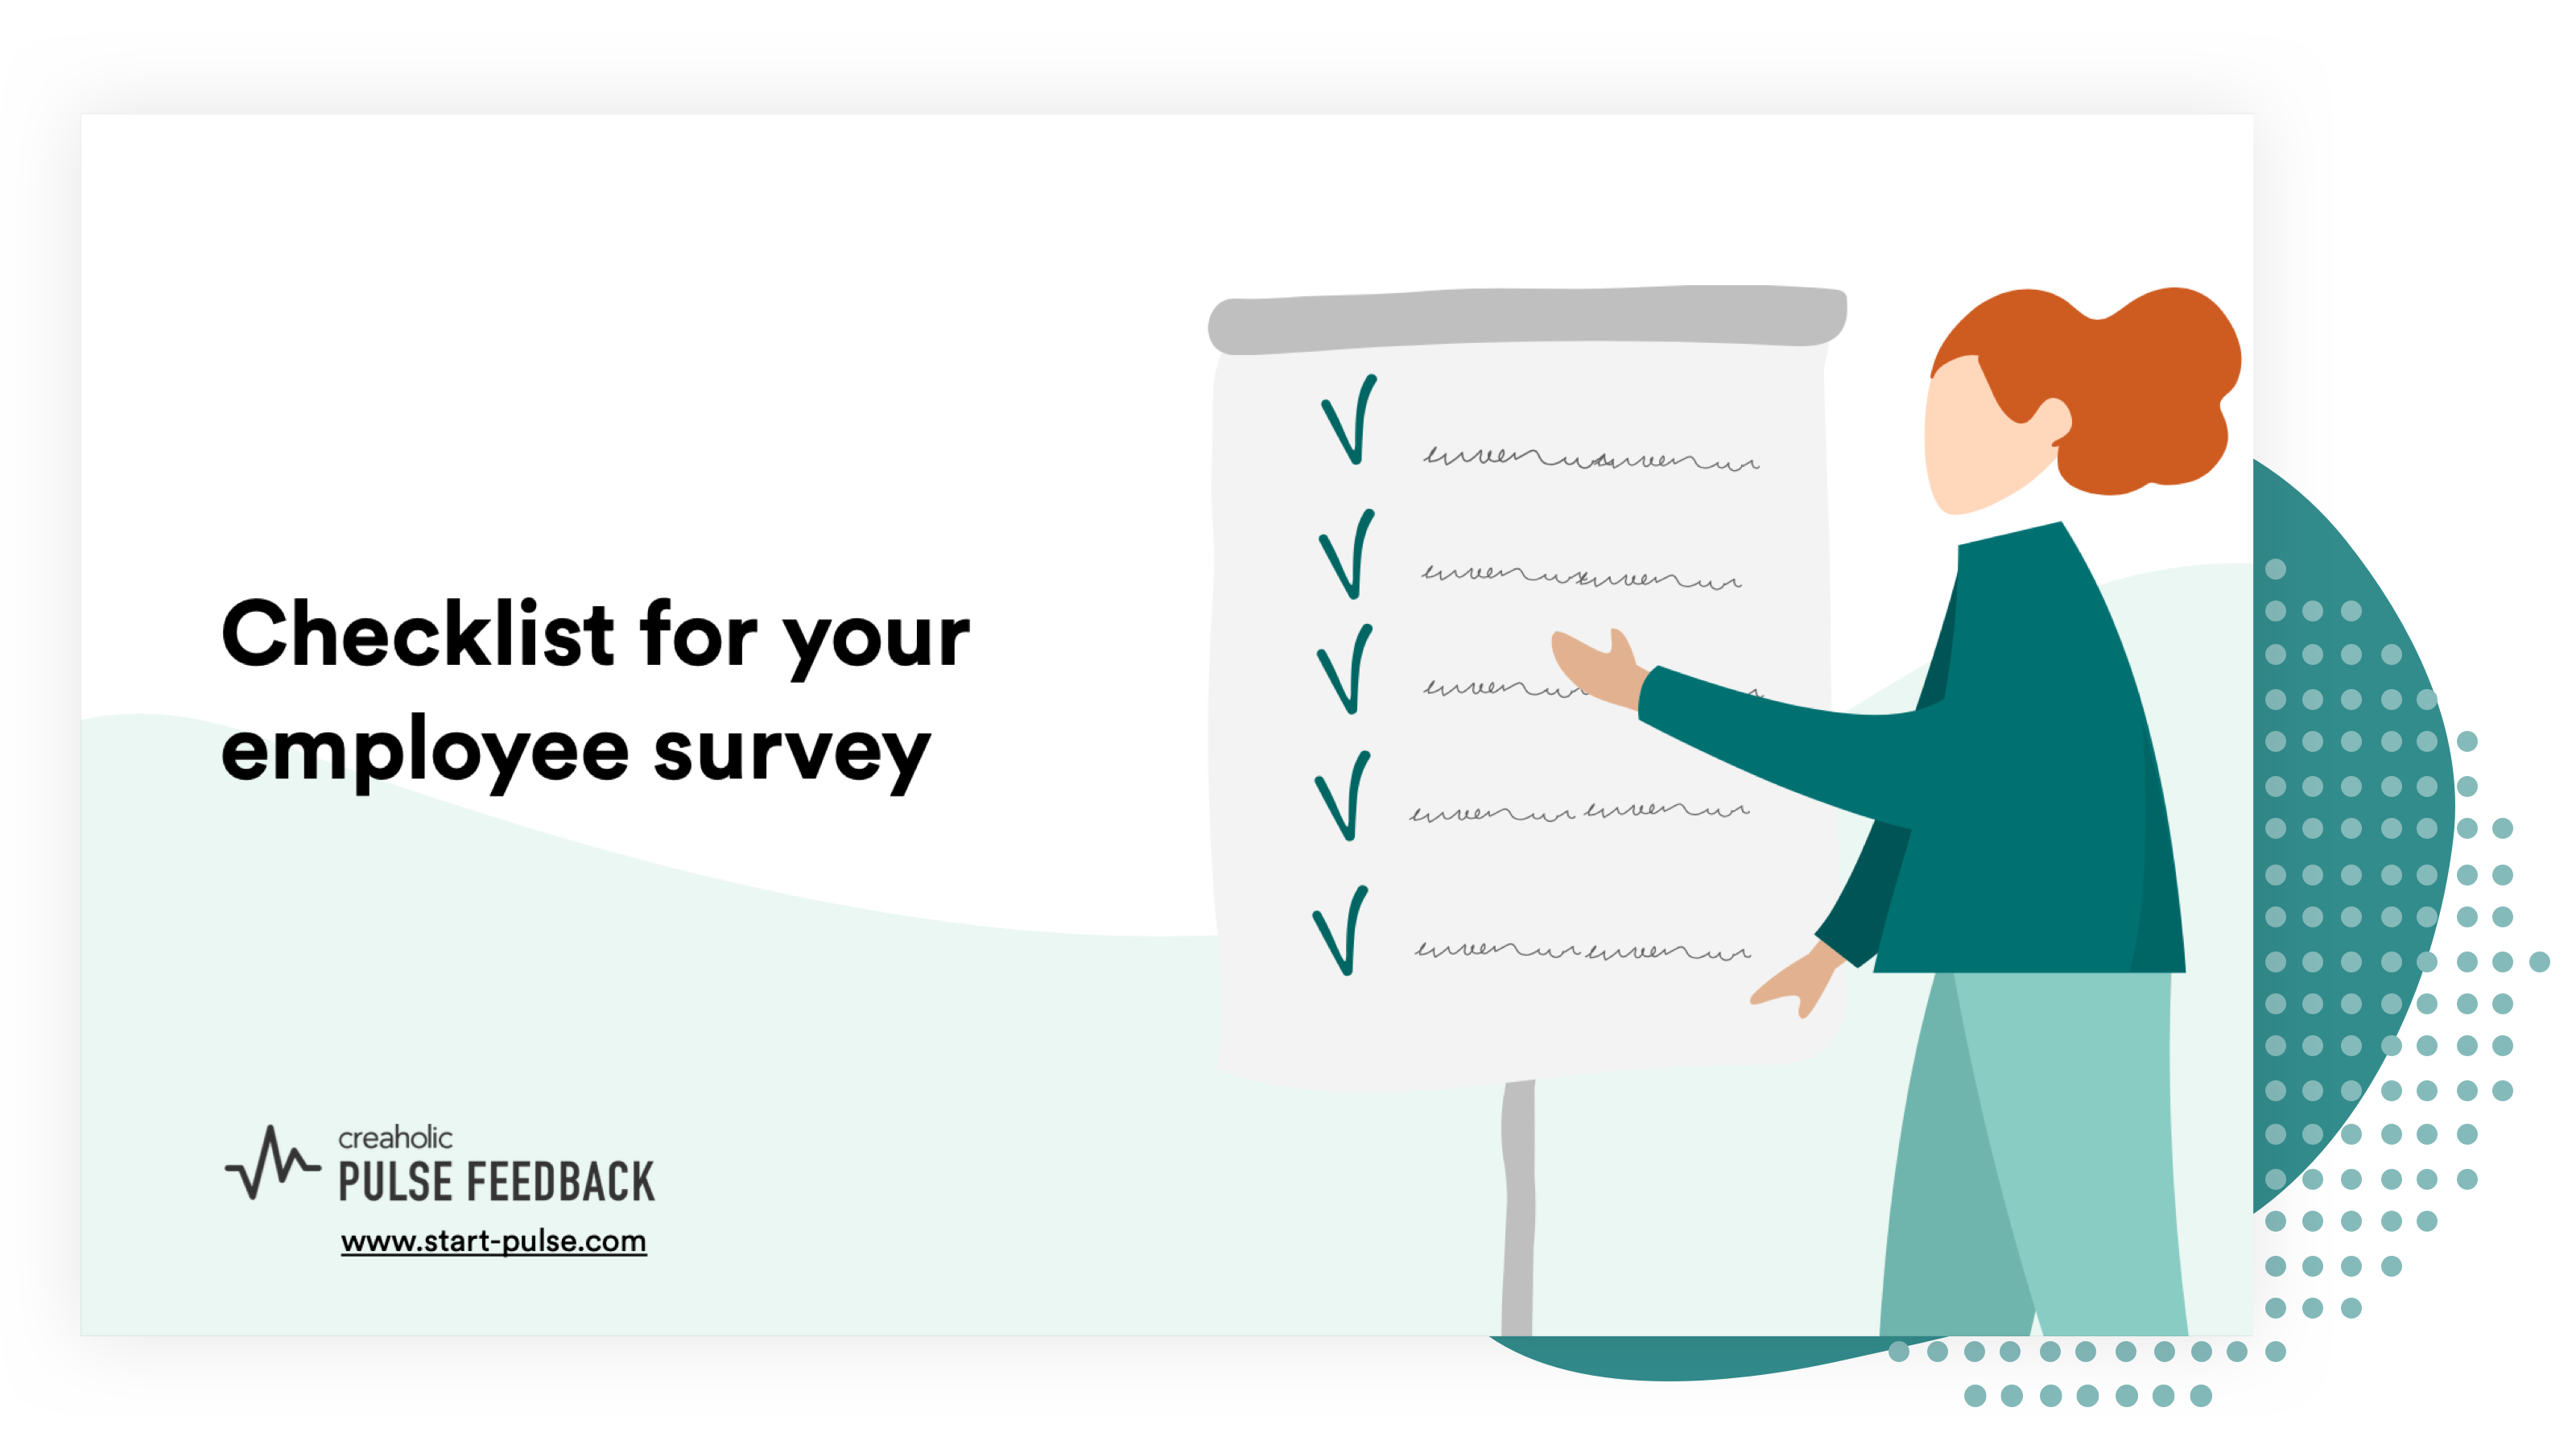 Preview of the checklist for an employee survey